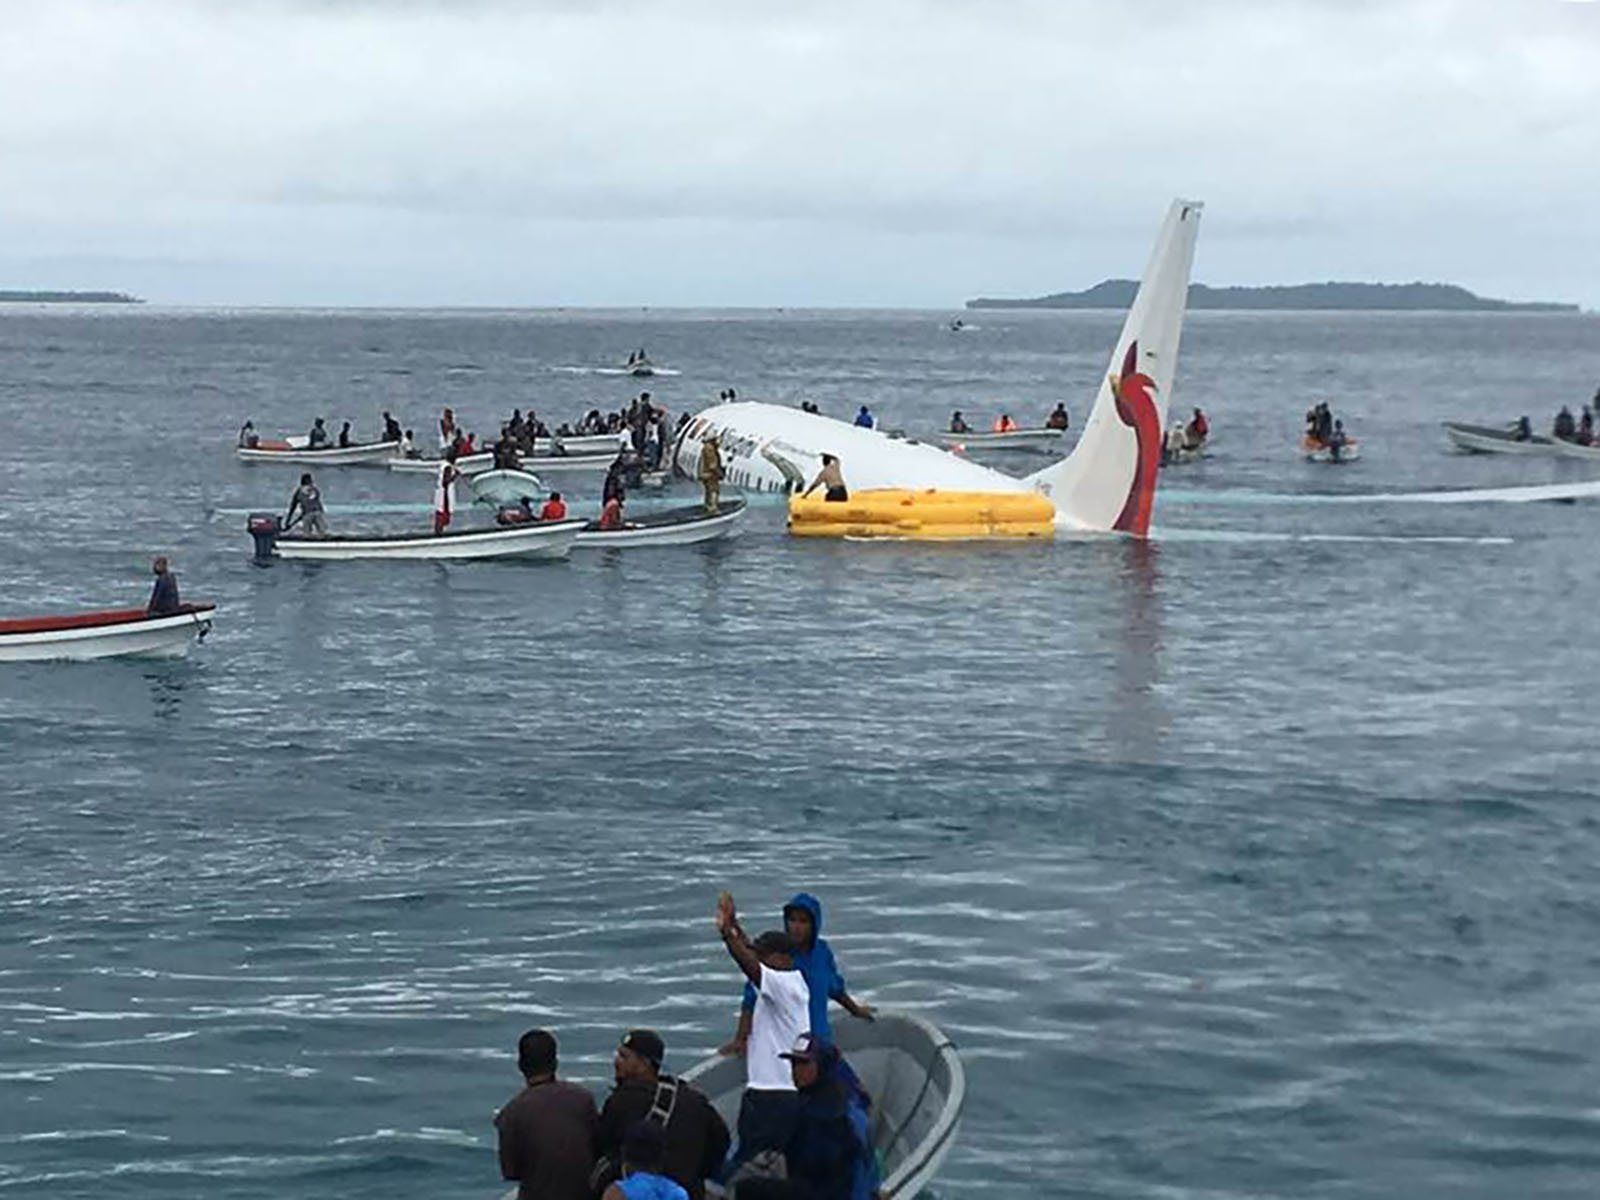 Dozens of airline passengers were forced to swim for their lives Friday after their plane missed a runway and landed in a sea lagoon on a remote island in the middle of the Pacific Ocean. (Credit: Dr. James Yaingeluo via CNN Wire)